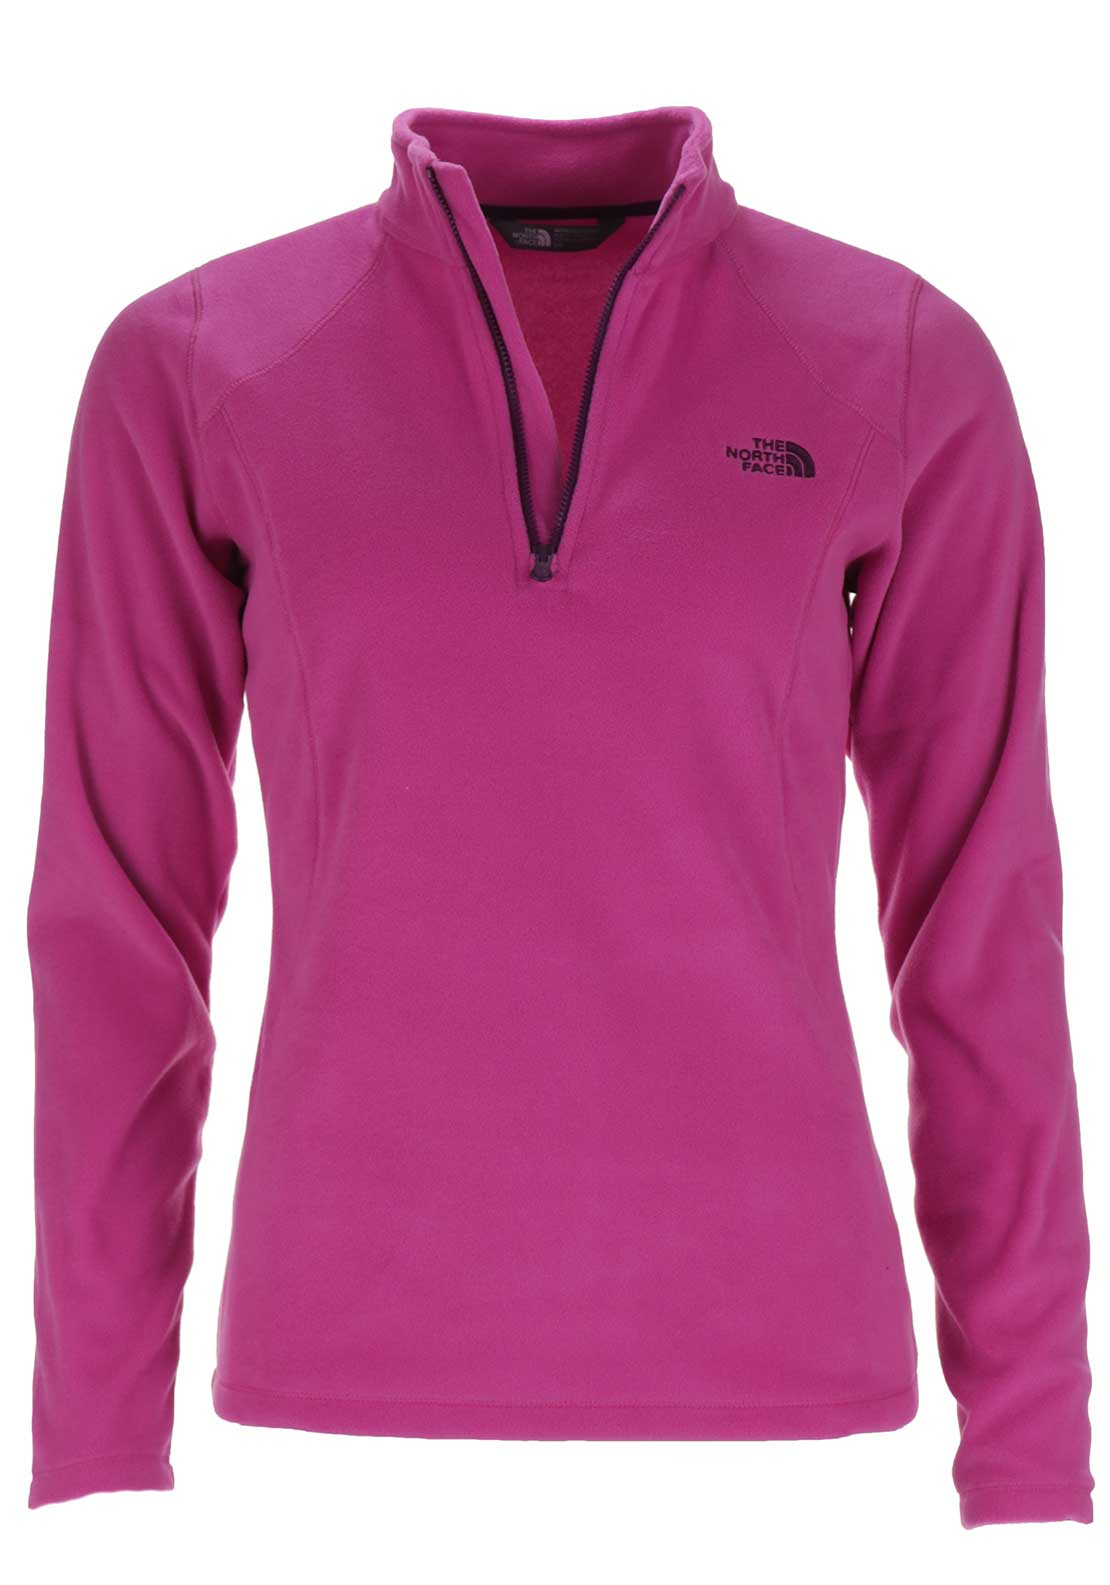 The North Face Womens 100 Glacier Half Zip Fleece, Raspberry Rose